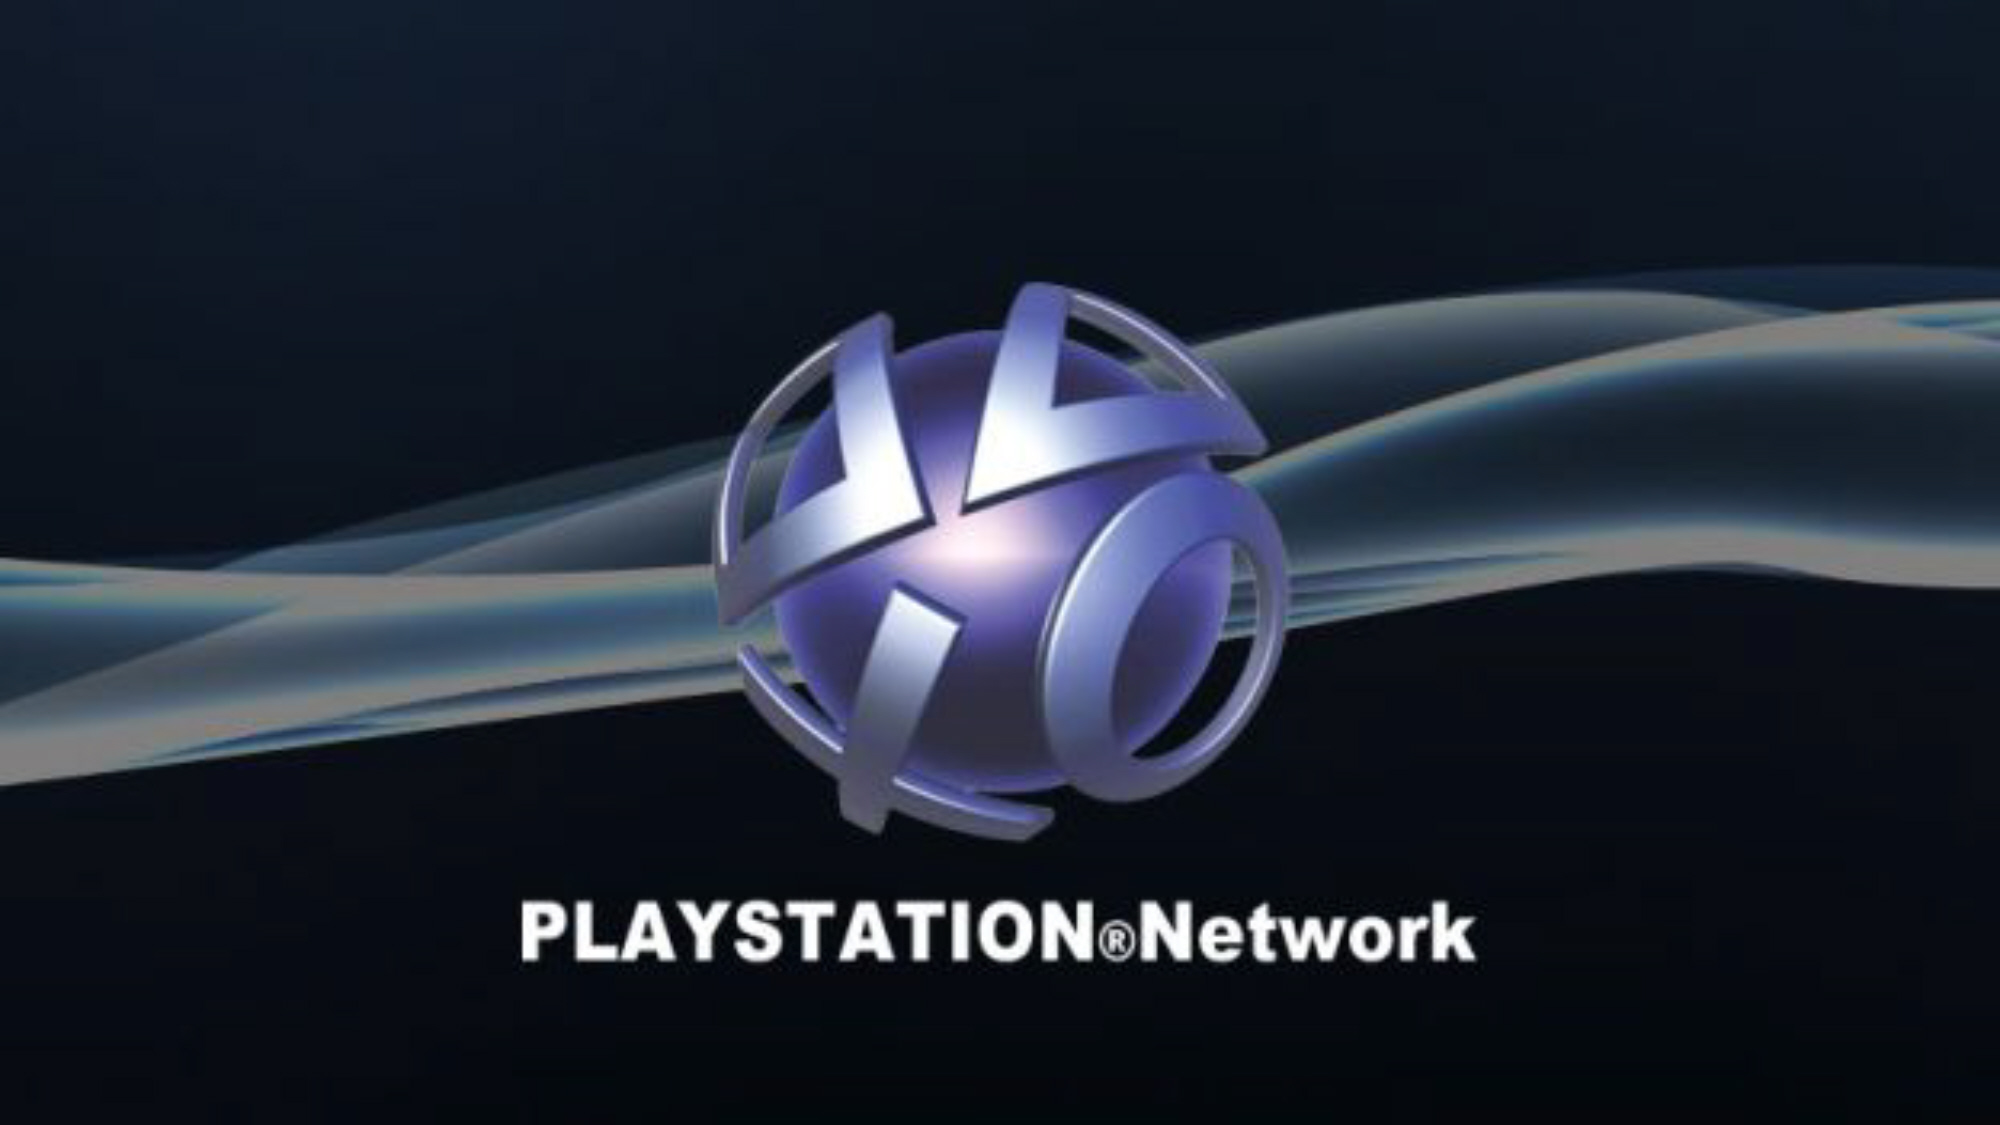 playstation-network-logo